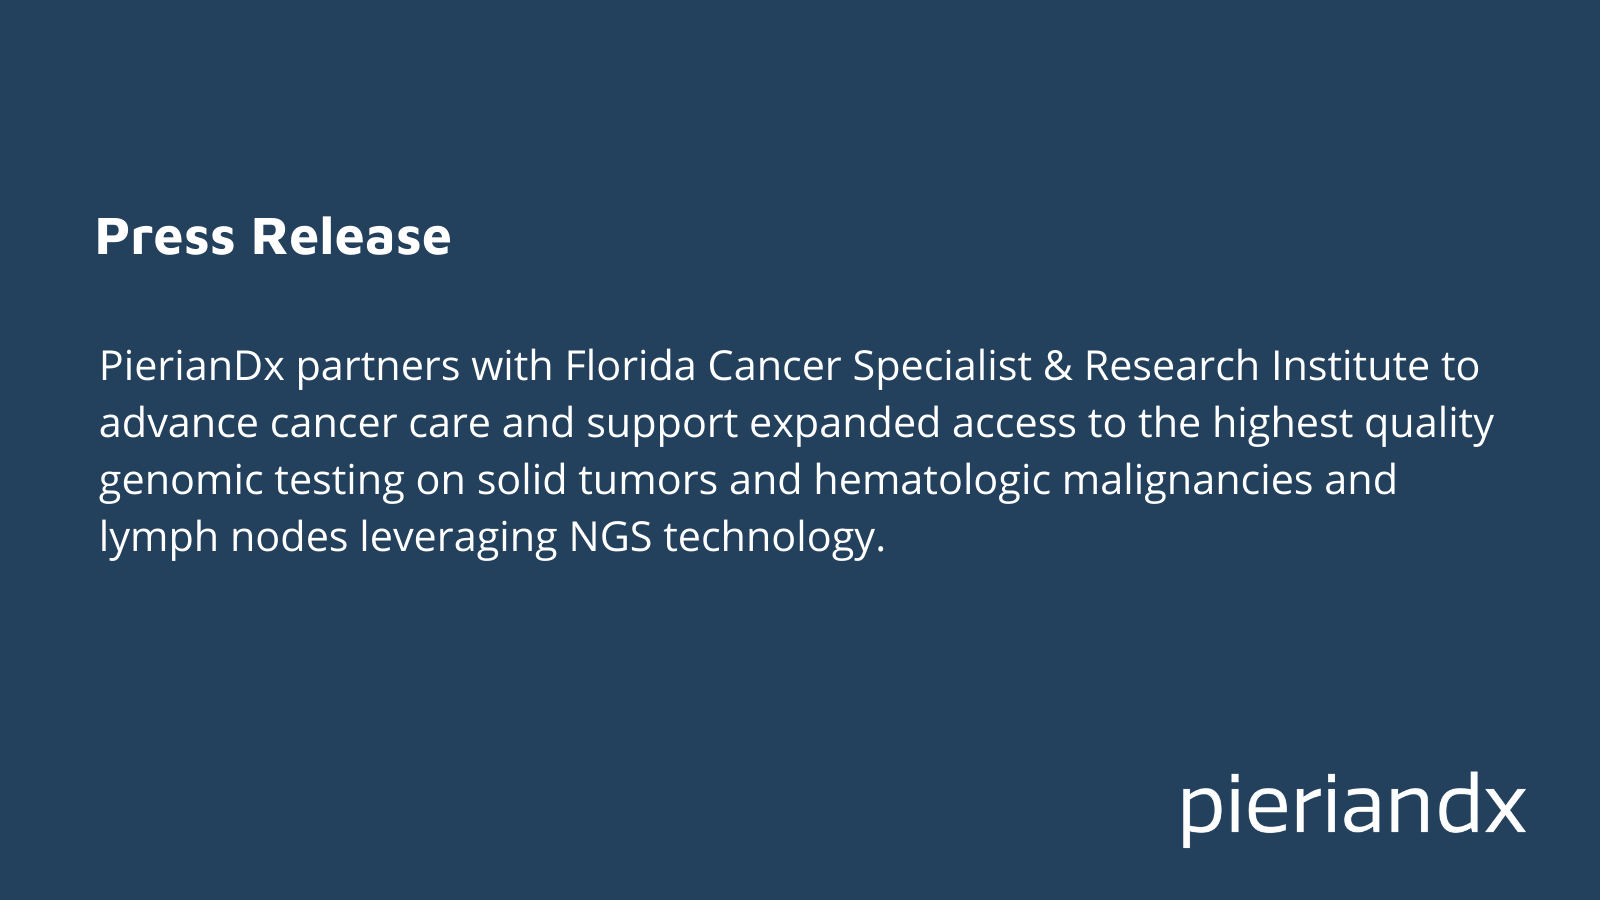 PierianDx Partners with Florida Cancer Specialists & Research Institute to Advance Cancer Care